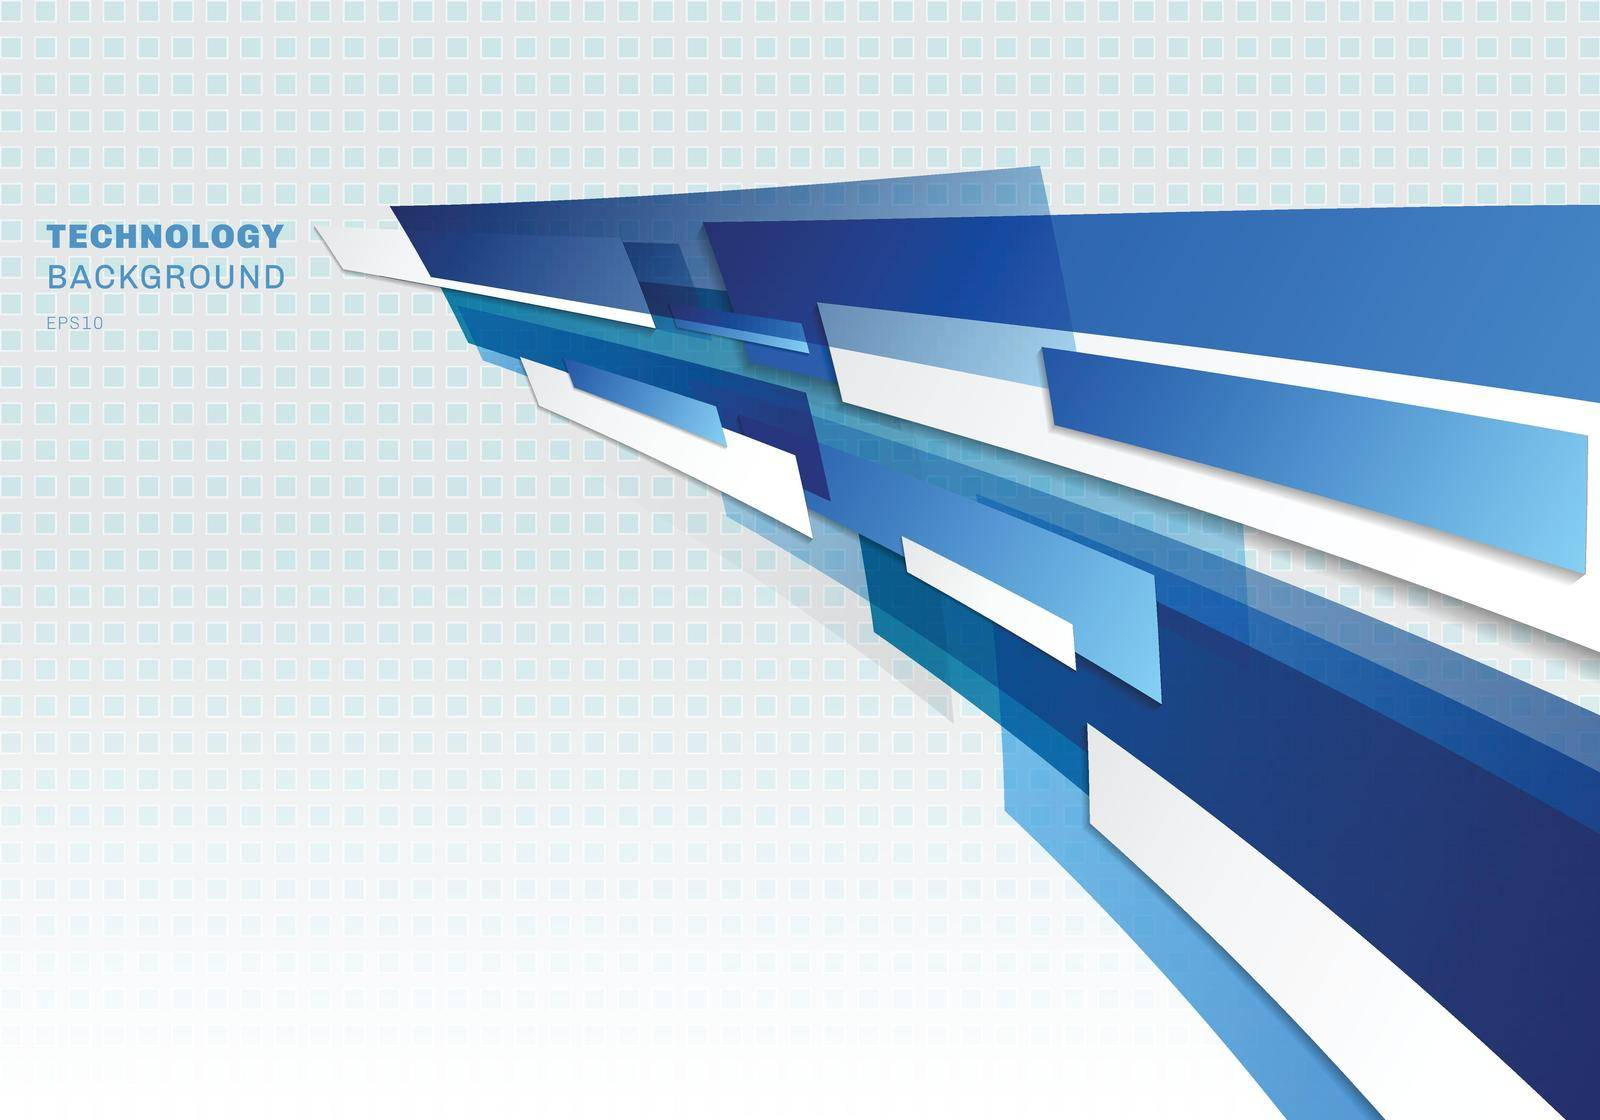 Abstract blue and white shiny geometric shapes overlapping moving technology futuristic style presentation perspective background with copy space. Vector illustration